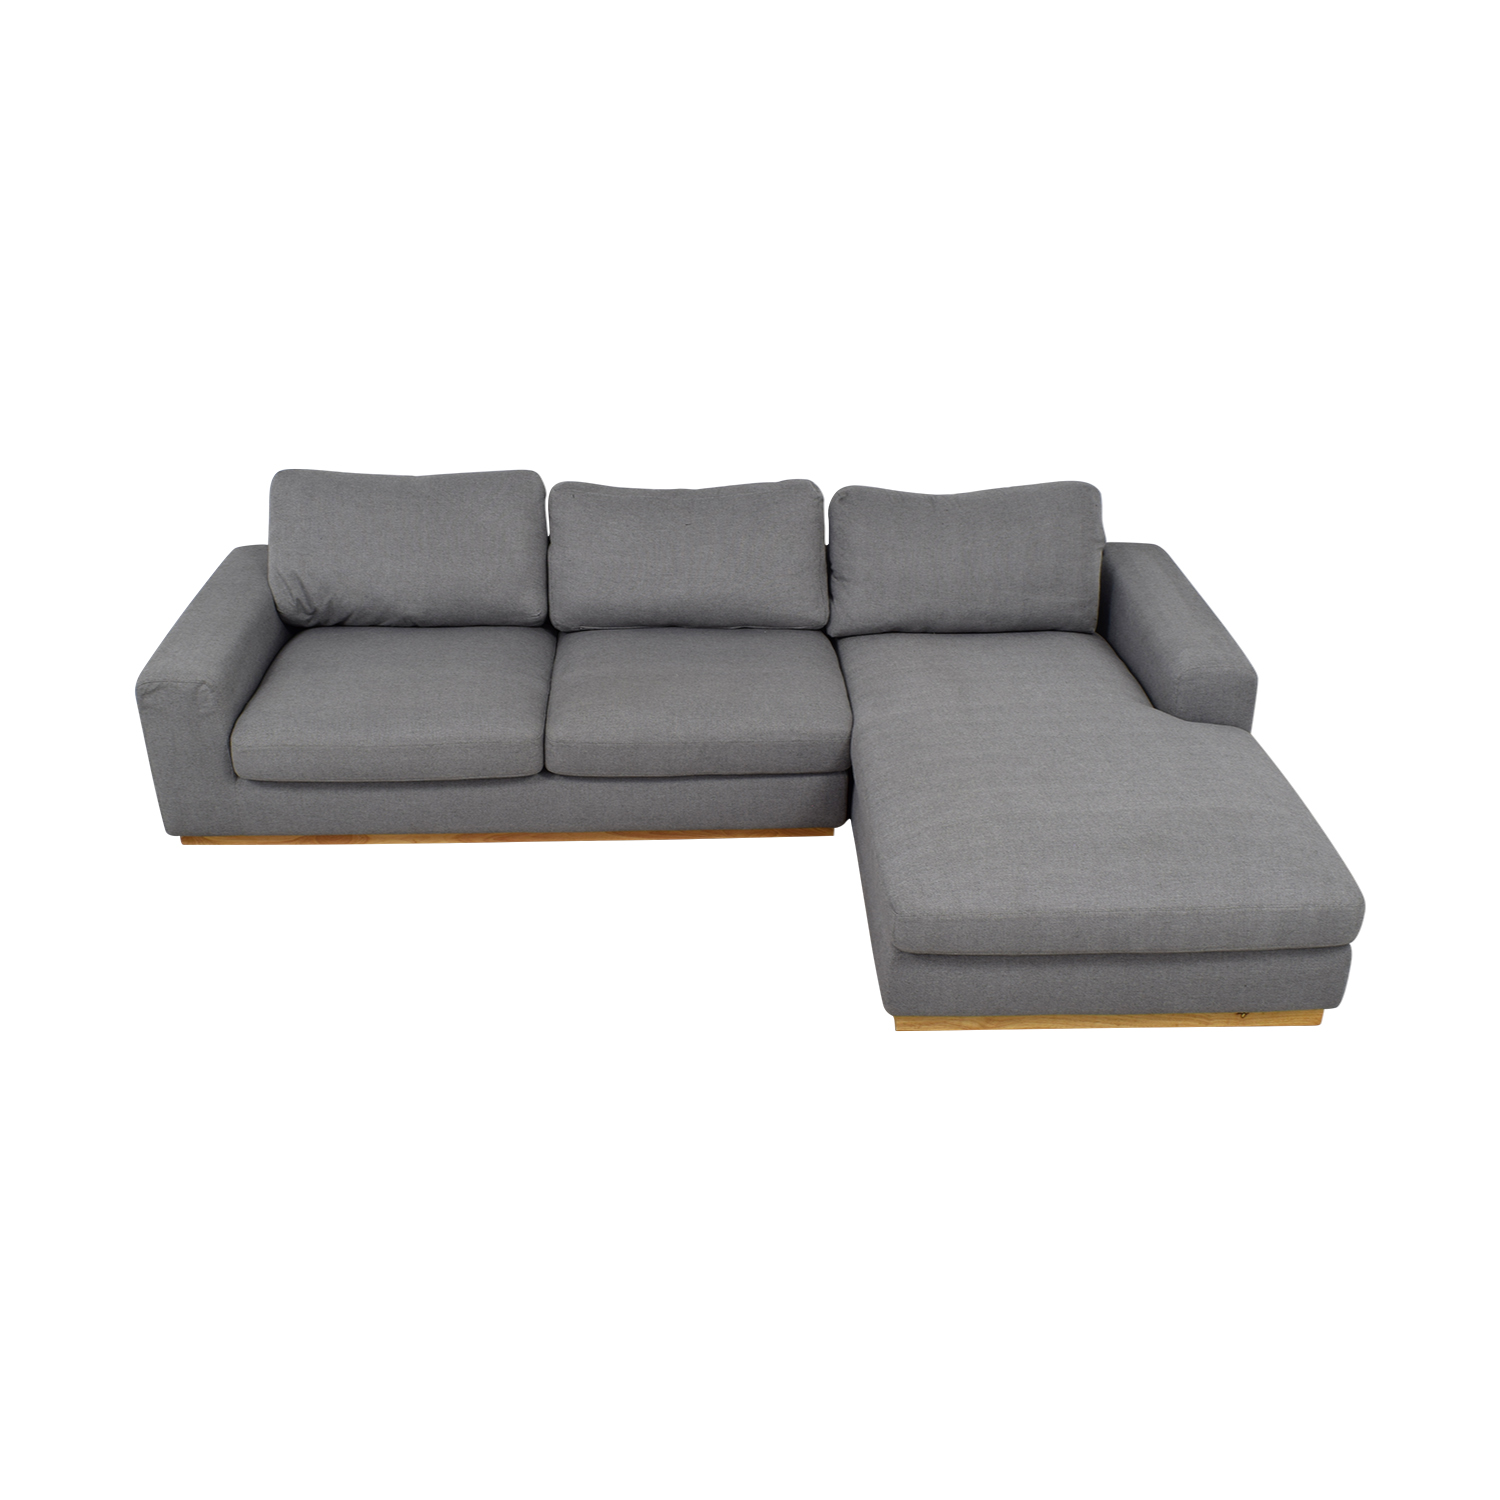 Rove Concepts Noah Grey Chaise Sectional Rove Concepts